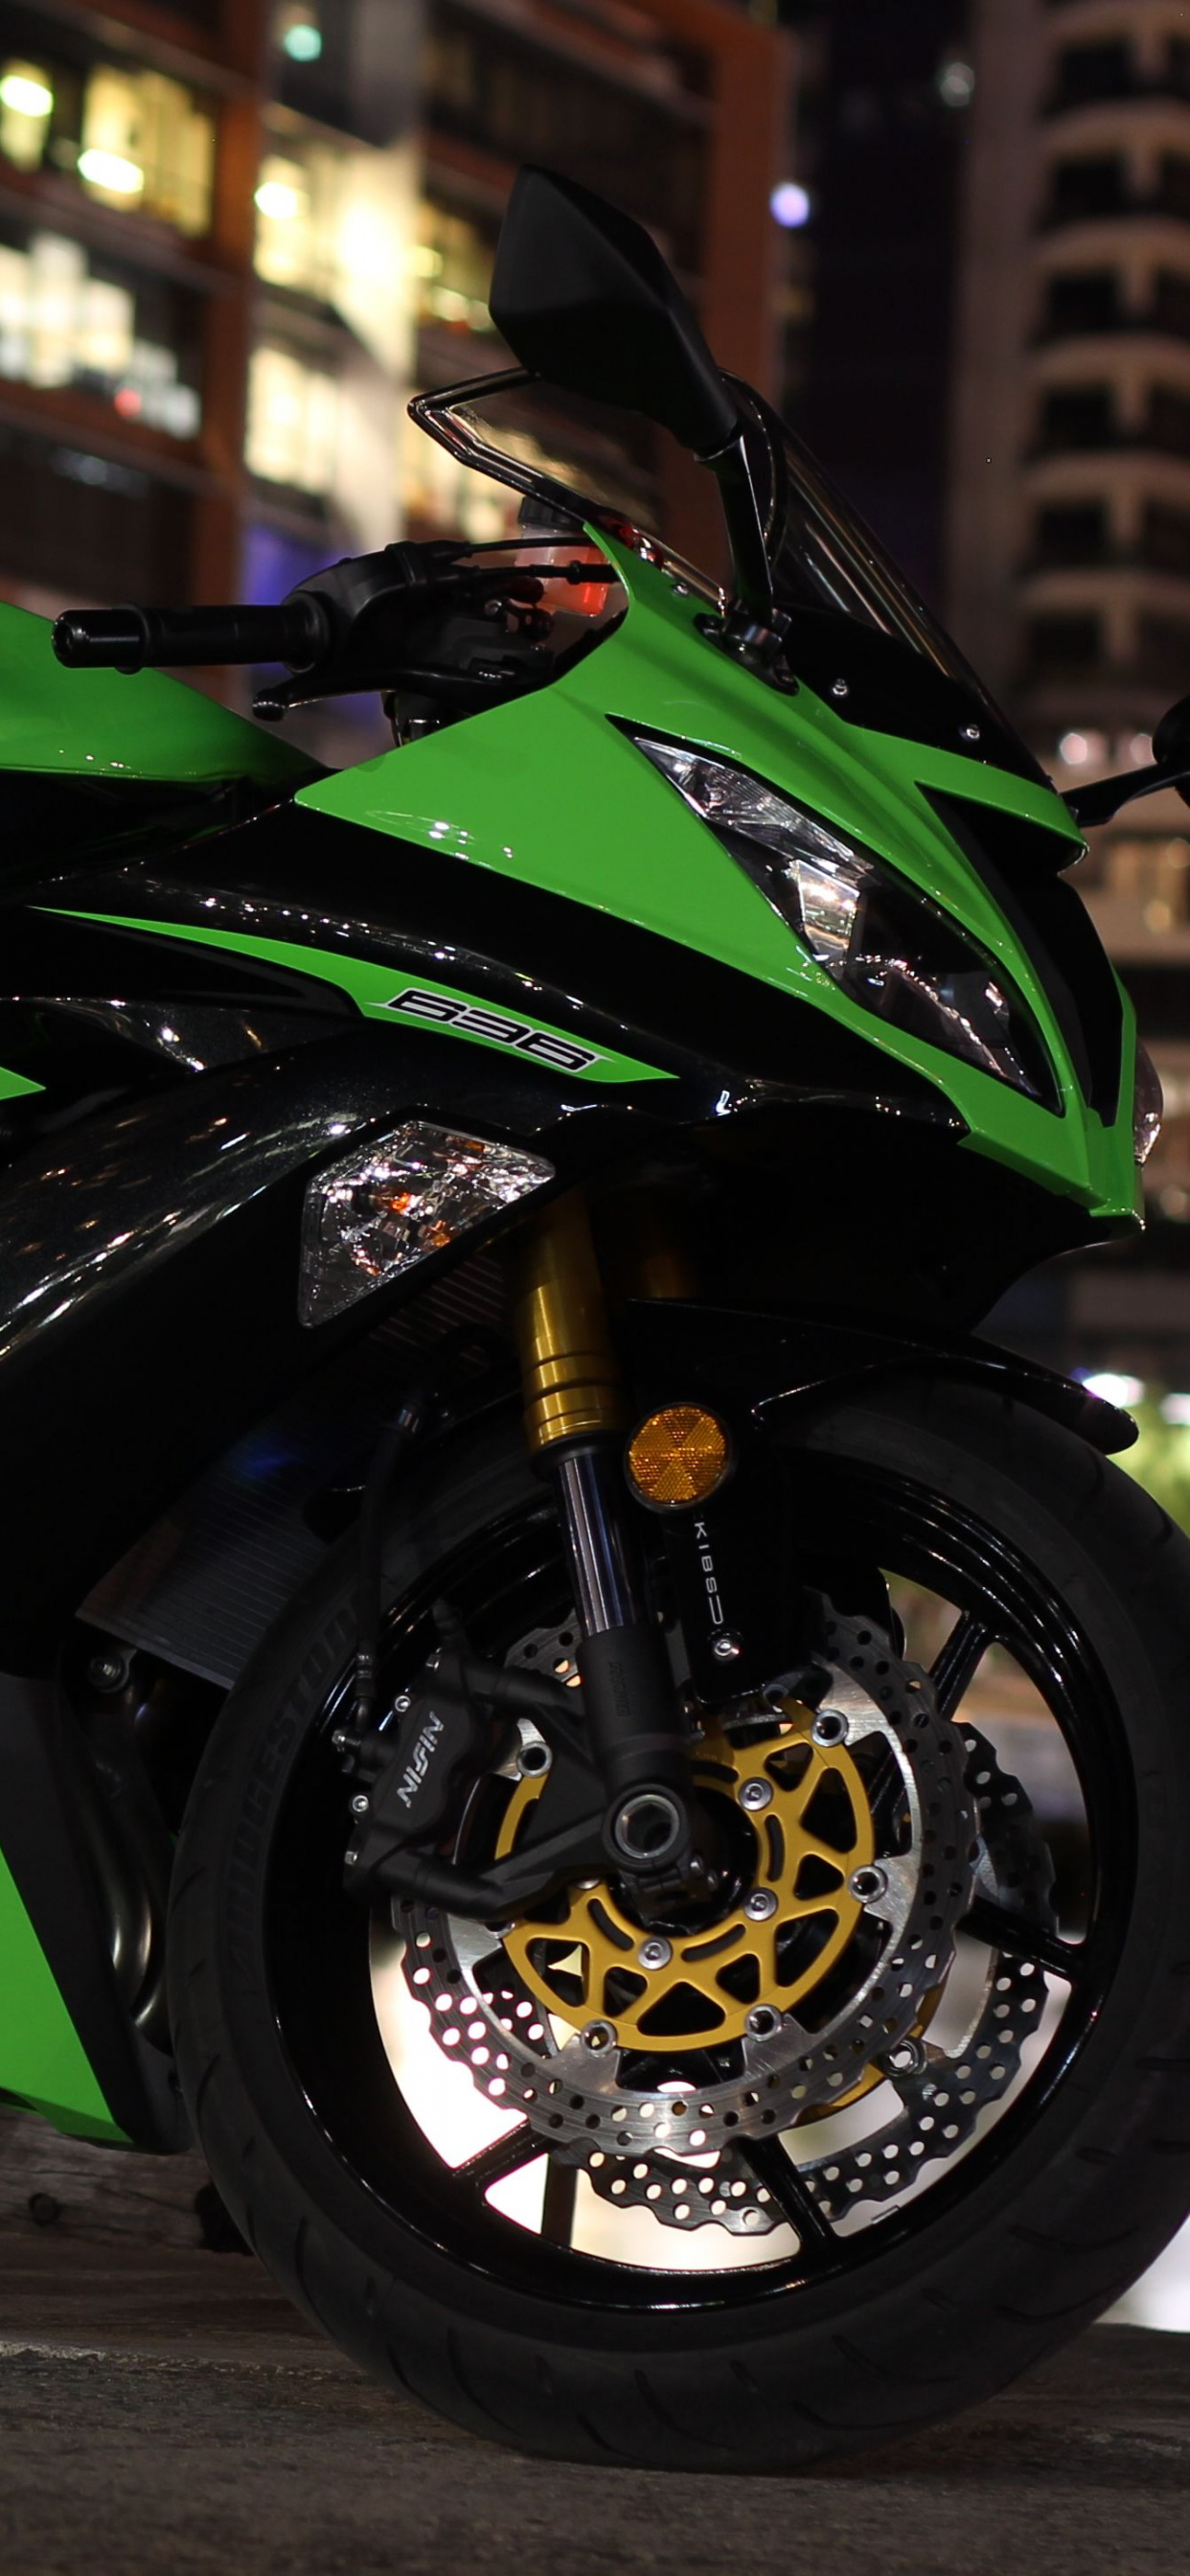 Kawasaki Zx6r Hd Hd Wallpapers backgrounds Download   Elsetge 1242x2688